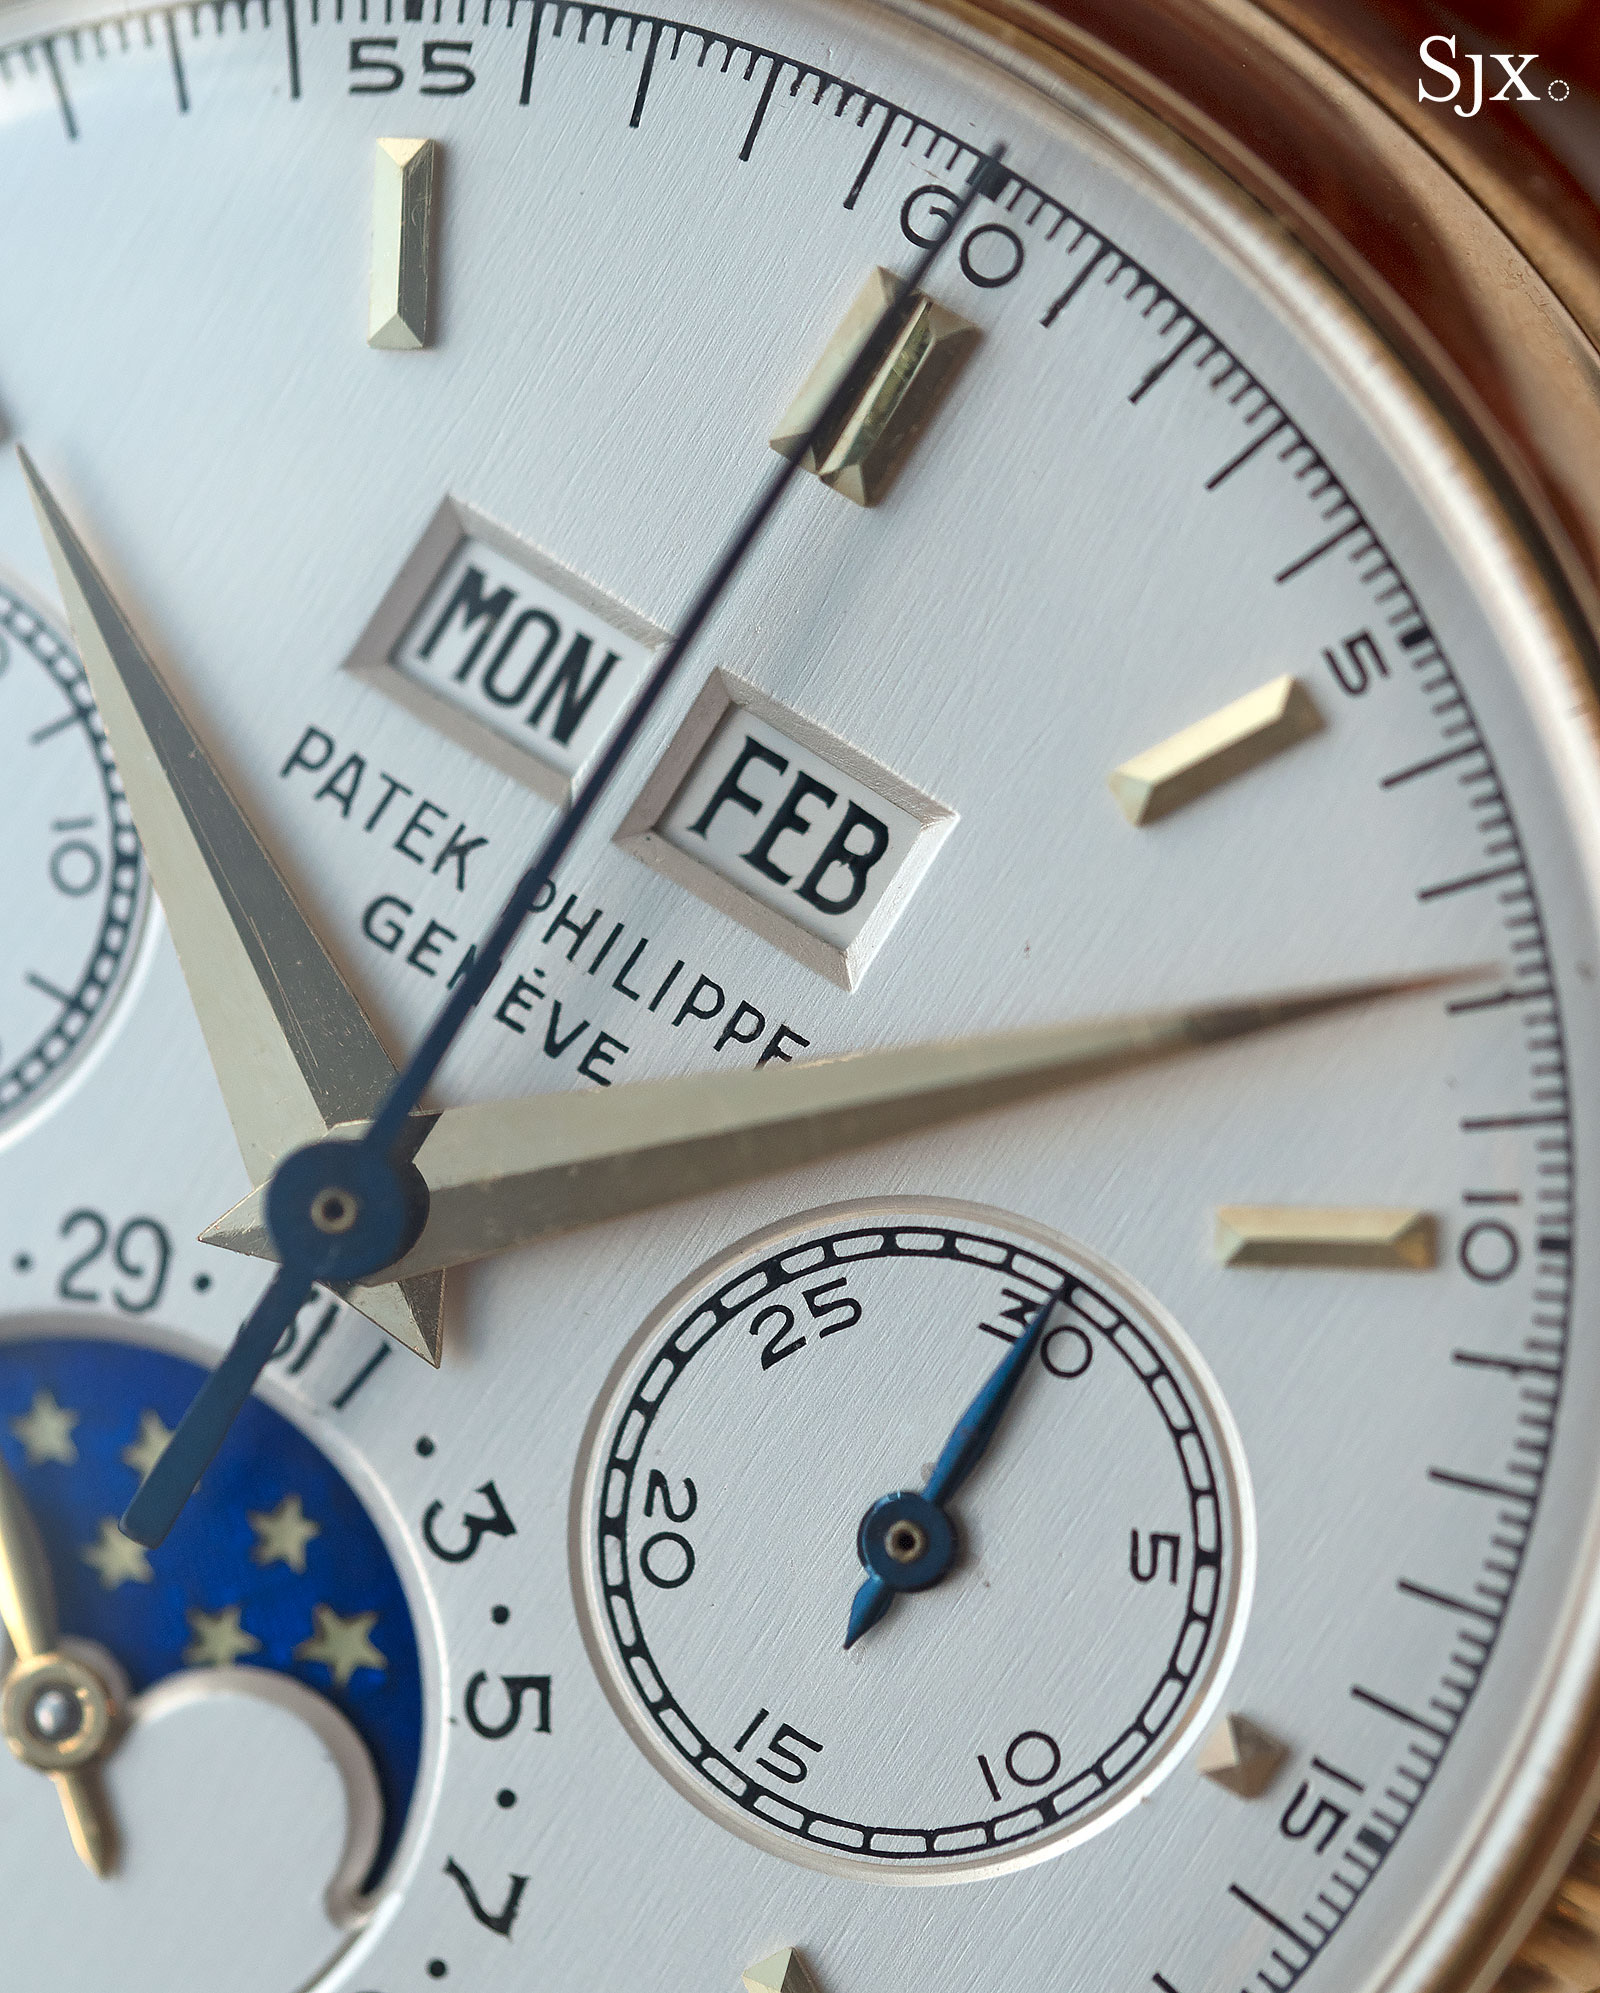 Patek Philippe 2499 third series yellow gold 3